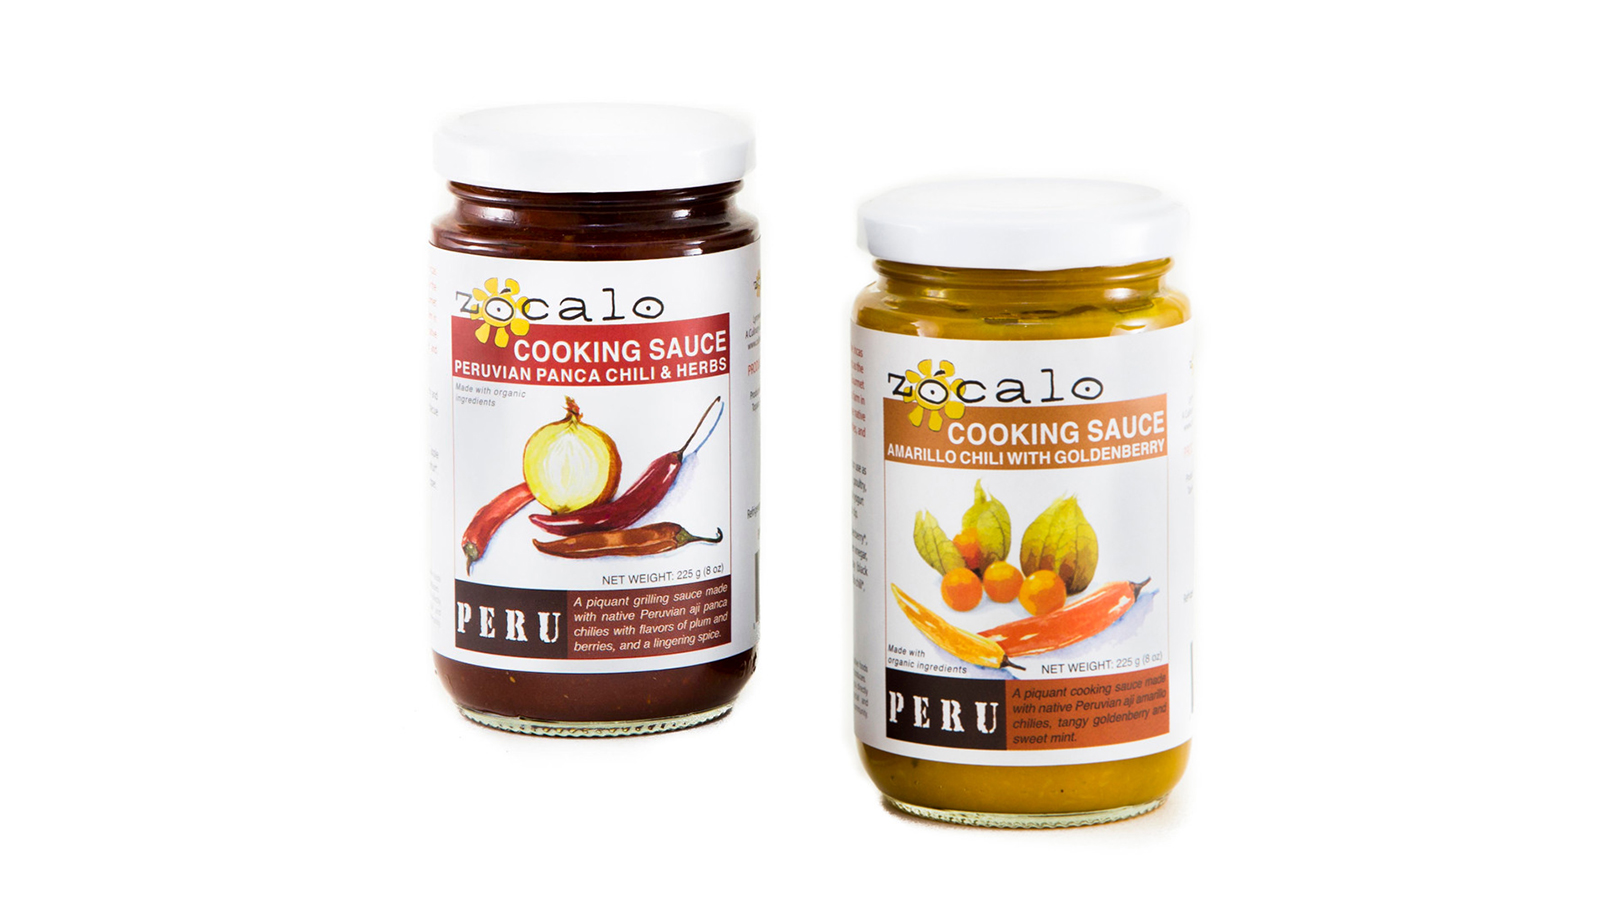 Zocalo Peru Cooking Sauce and Chili Paste